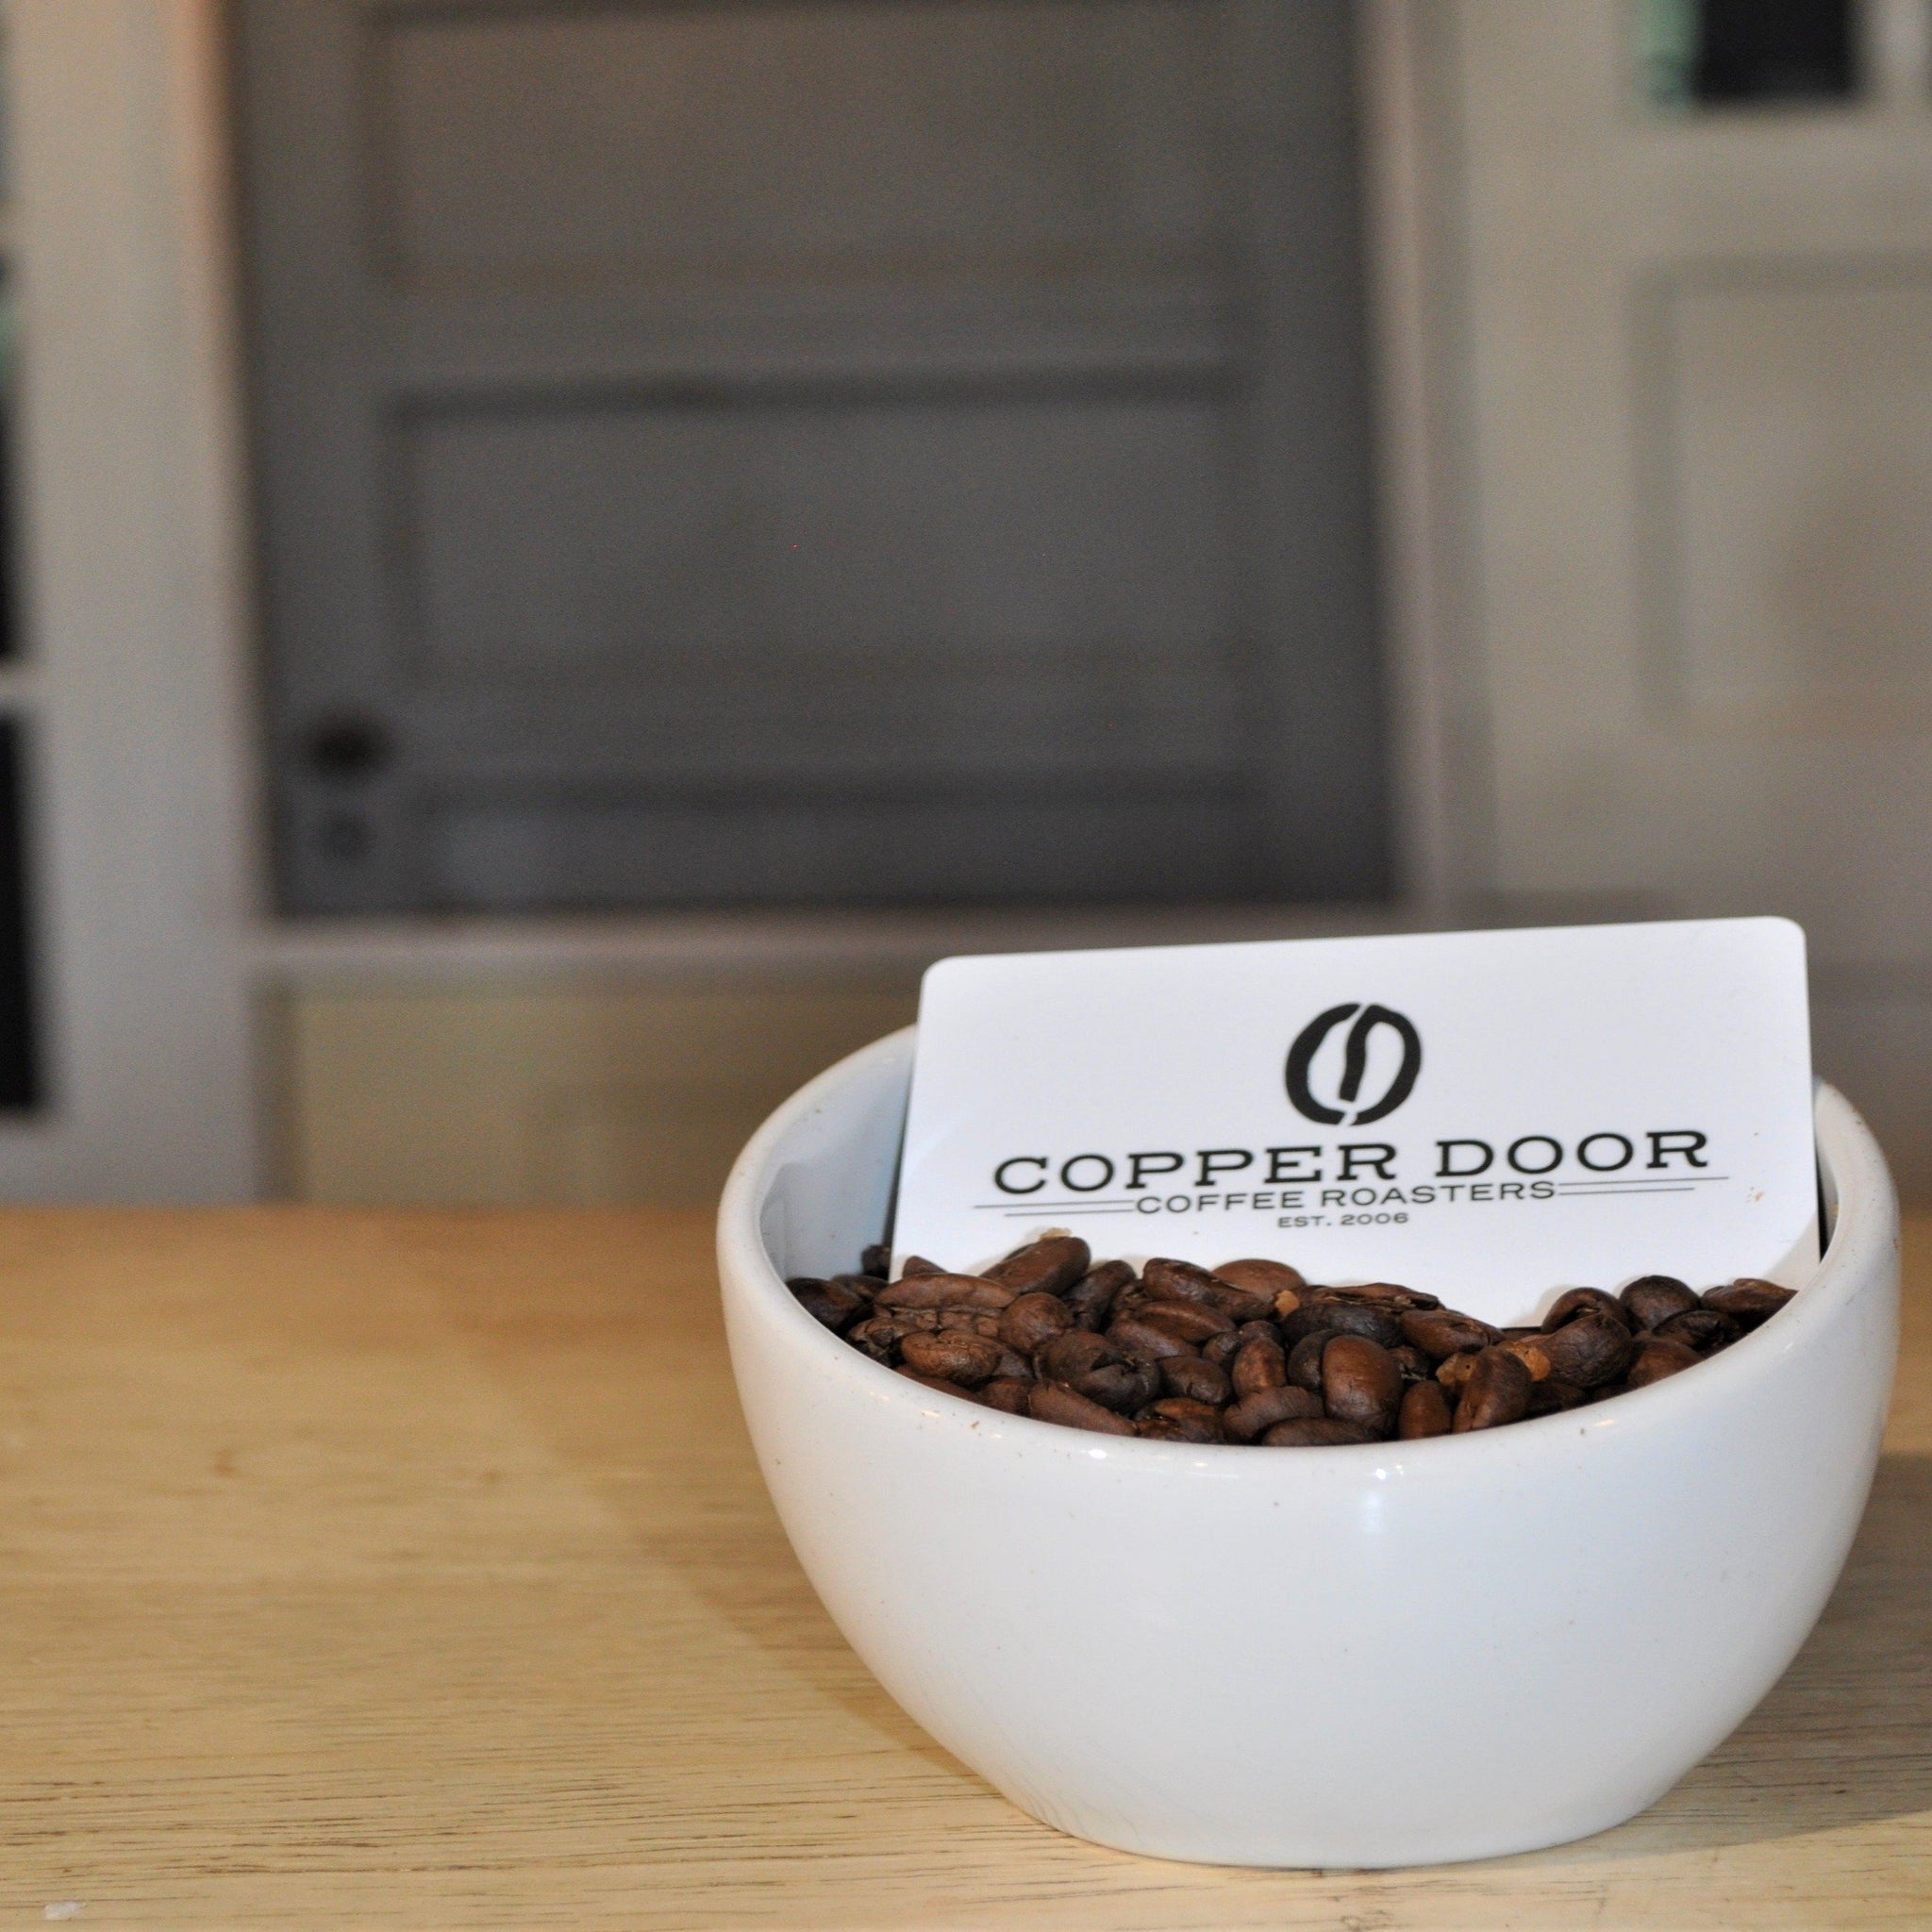 Our gift cards are easy to use in any of our cafes.